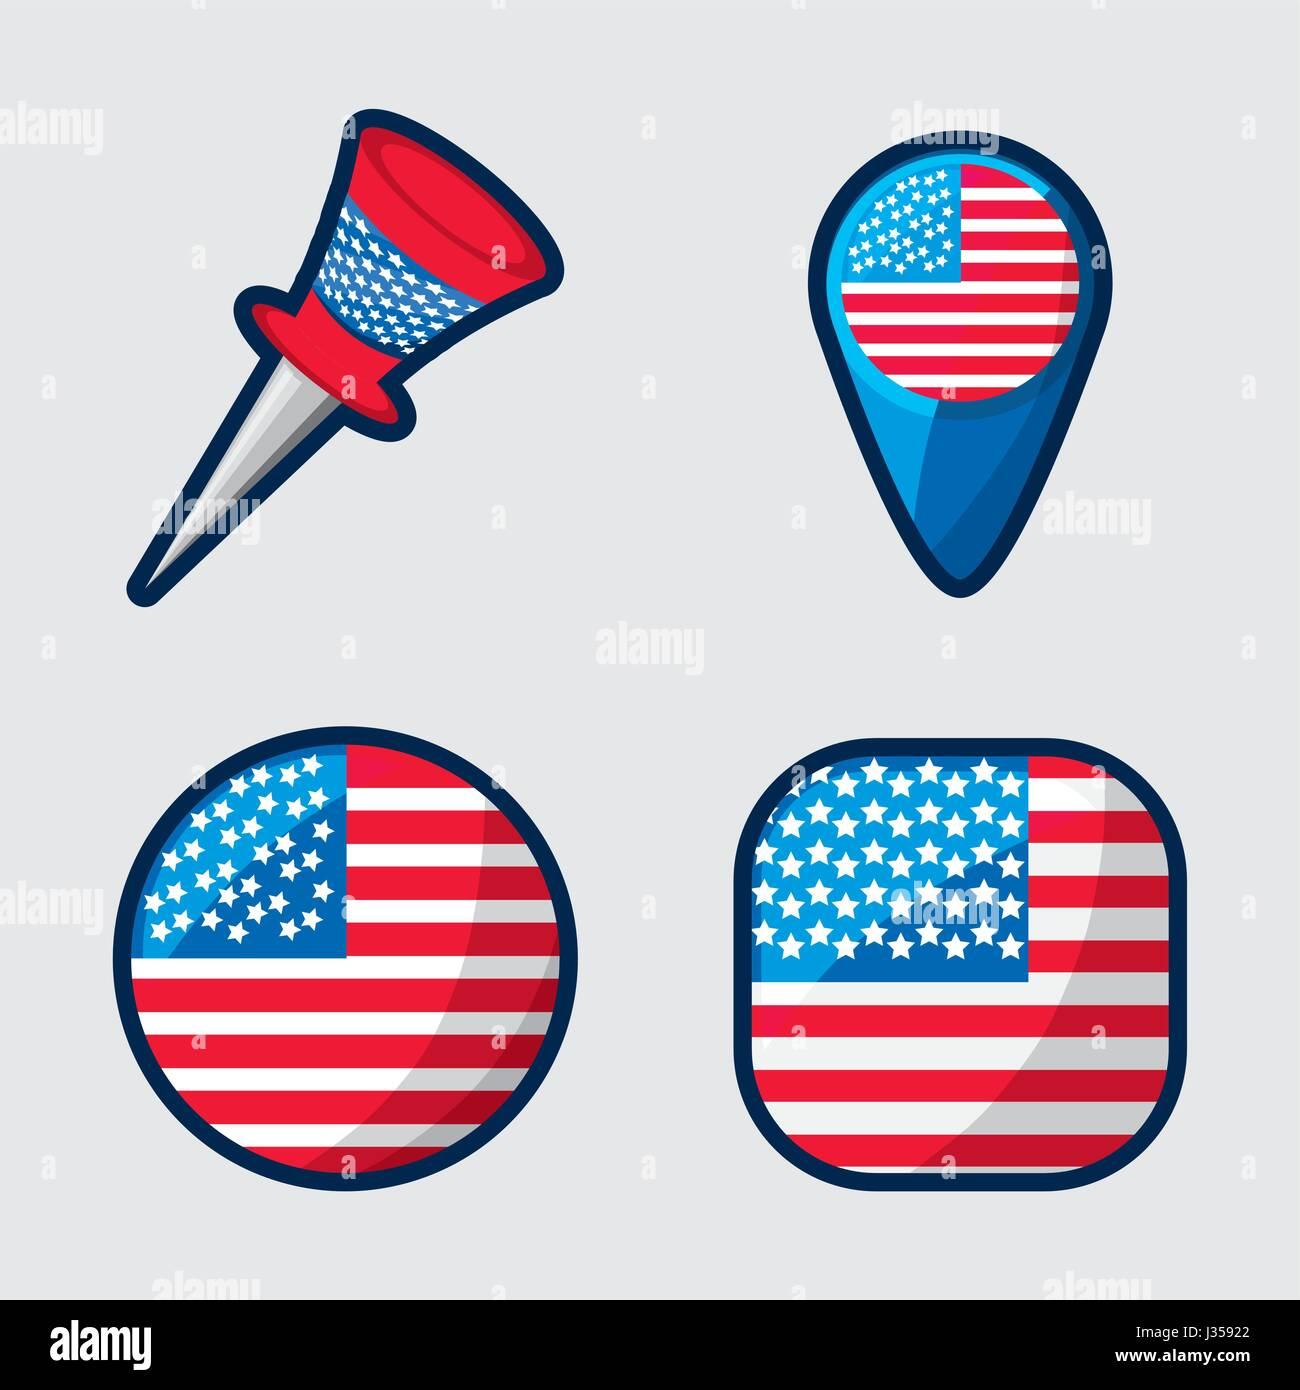 american buttons to encourage the spirit of patriotism - Stock Image